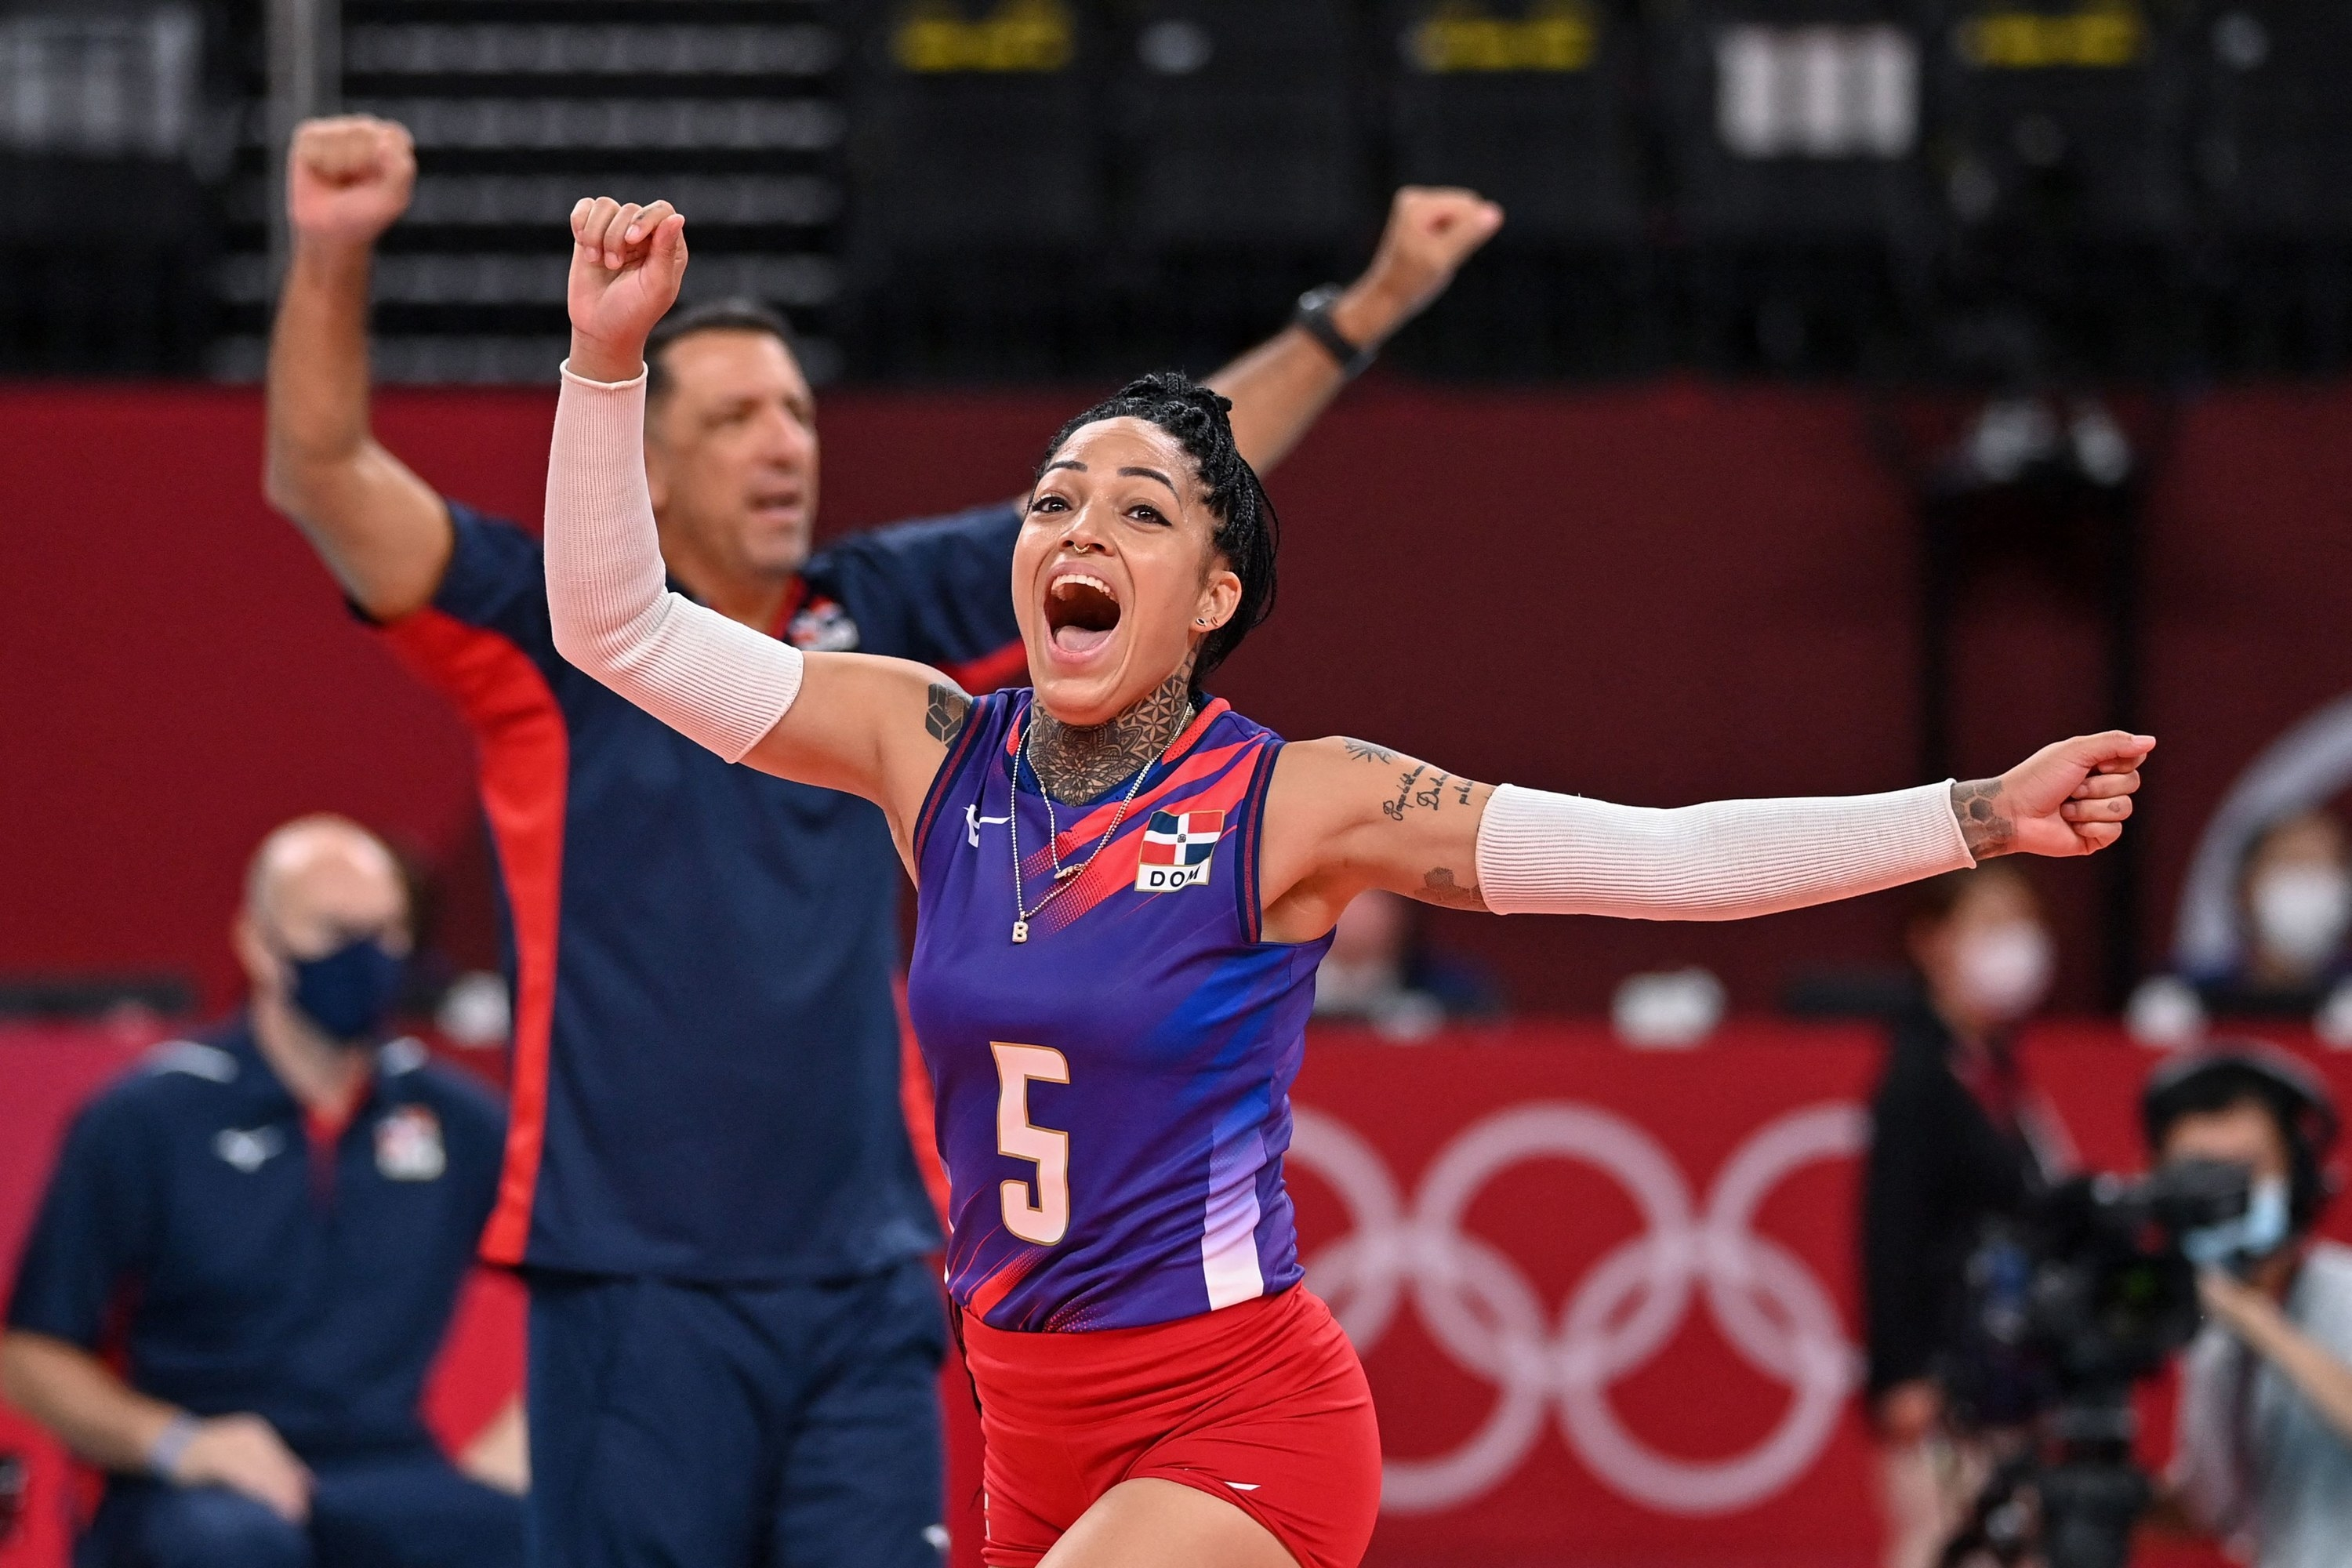 An Olympic volleyball player cheers with her arms outstretched